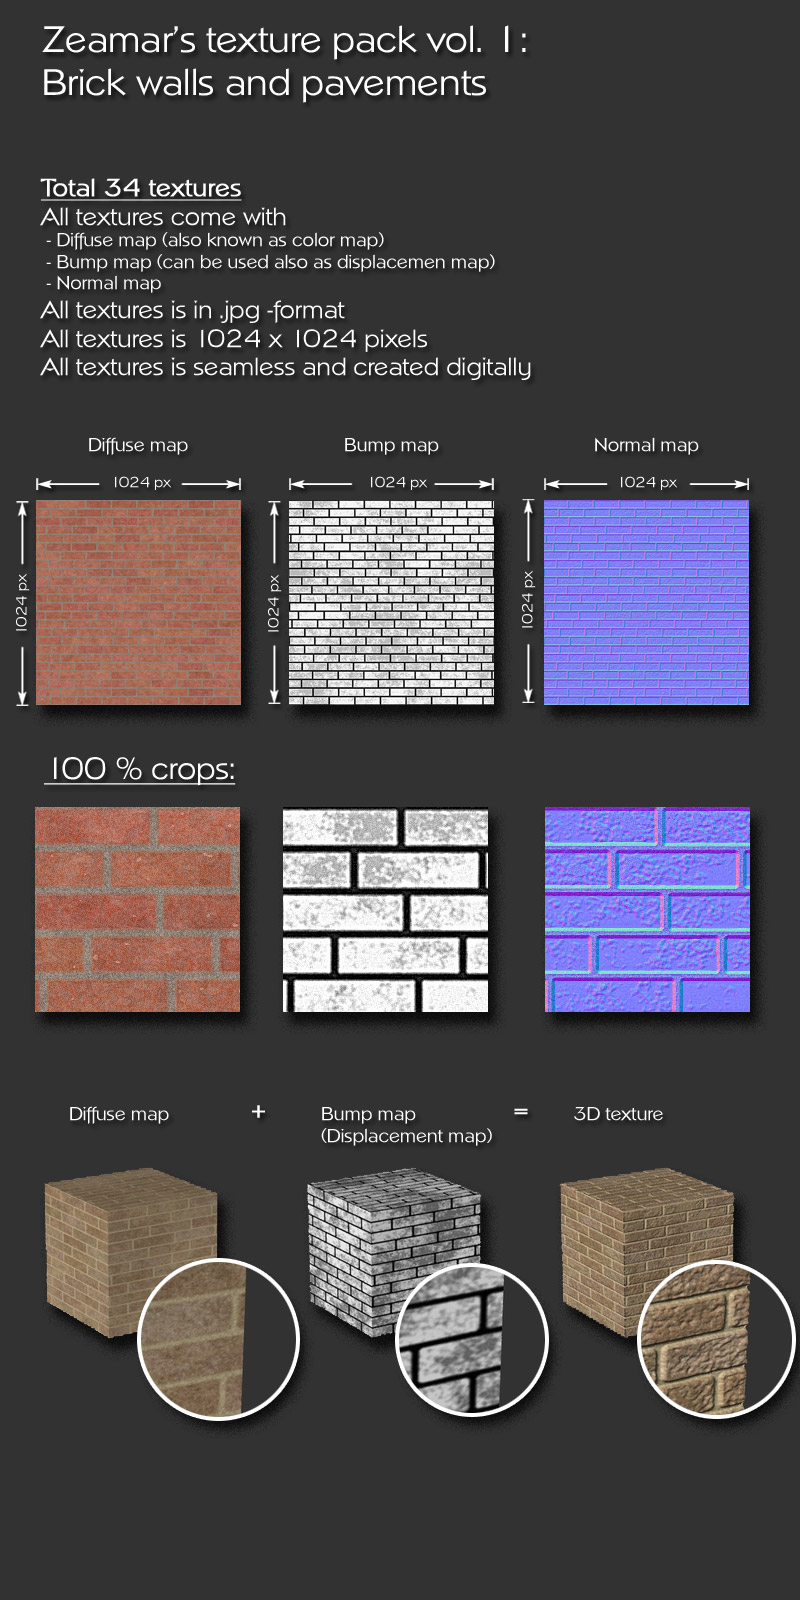 Zeamars texture pack vol 1 - Brick walls and pavements